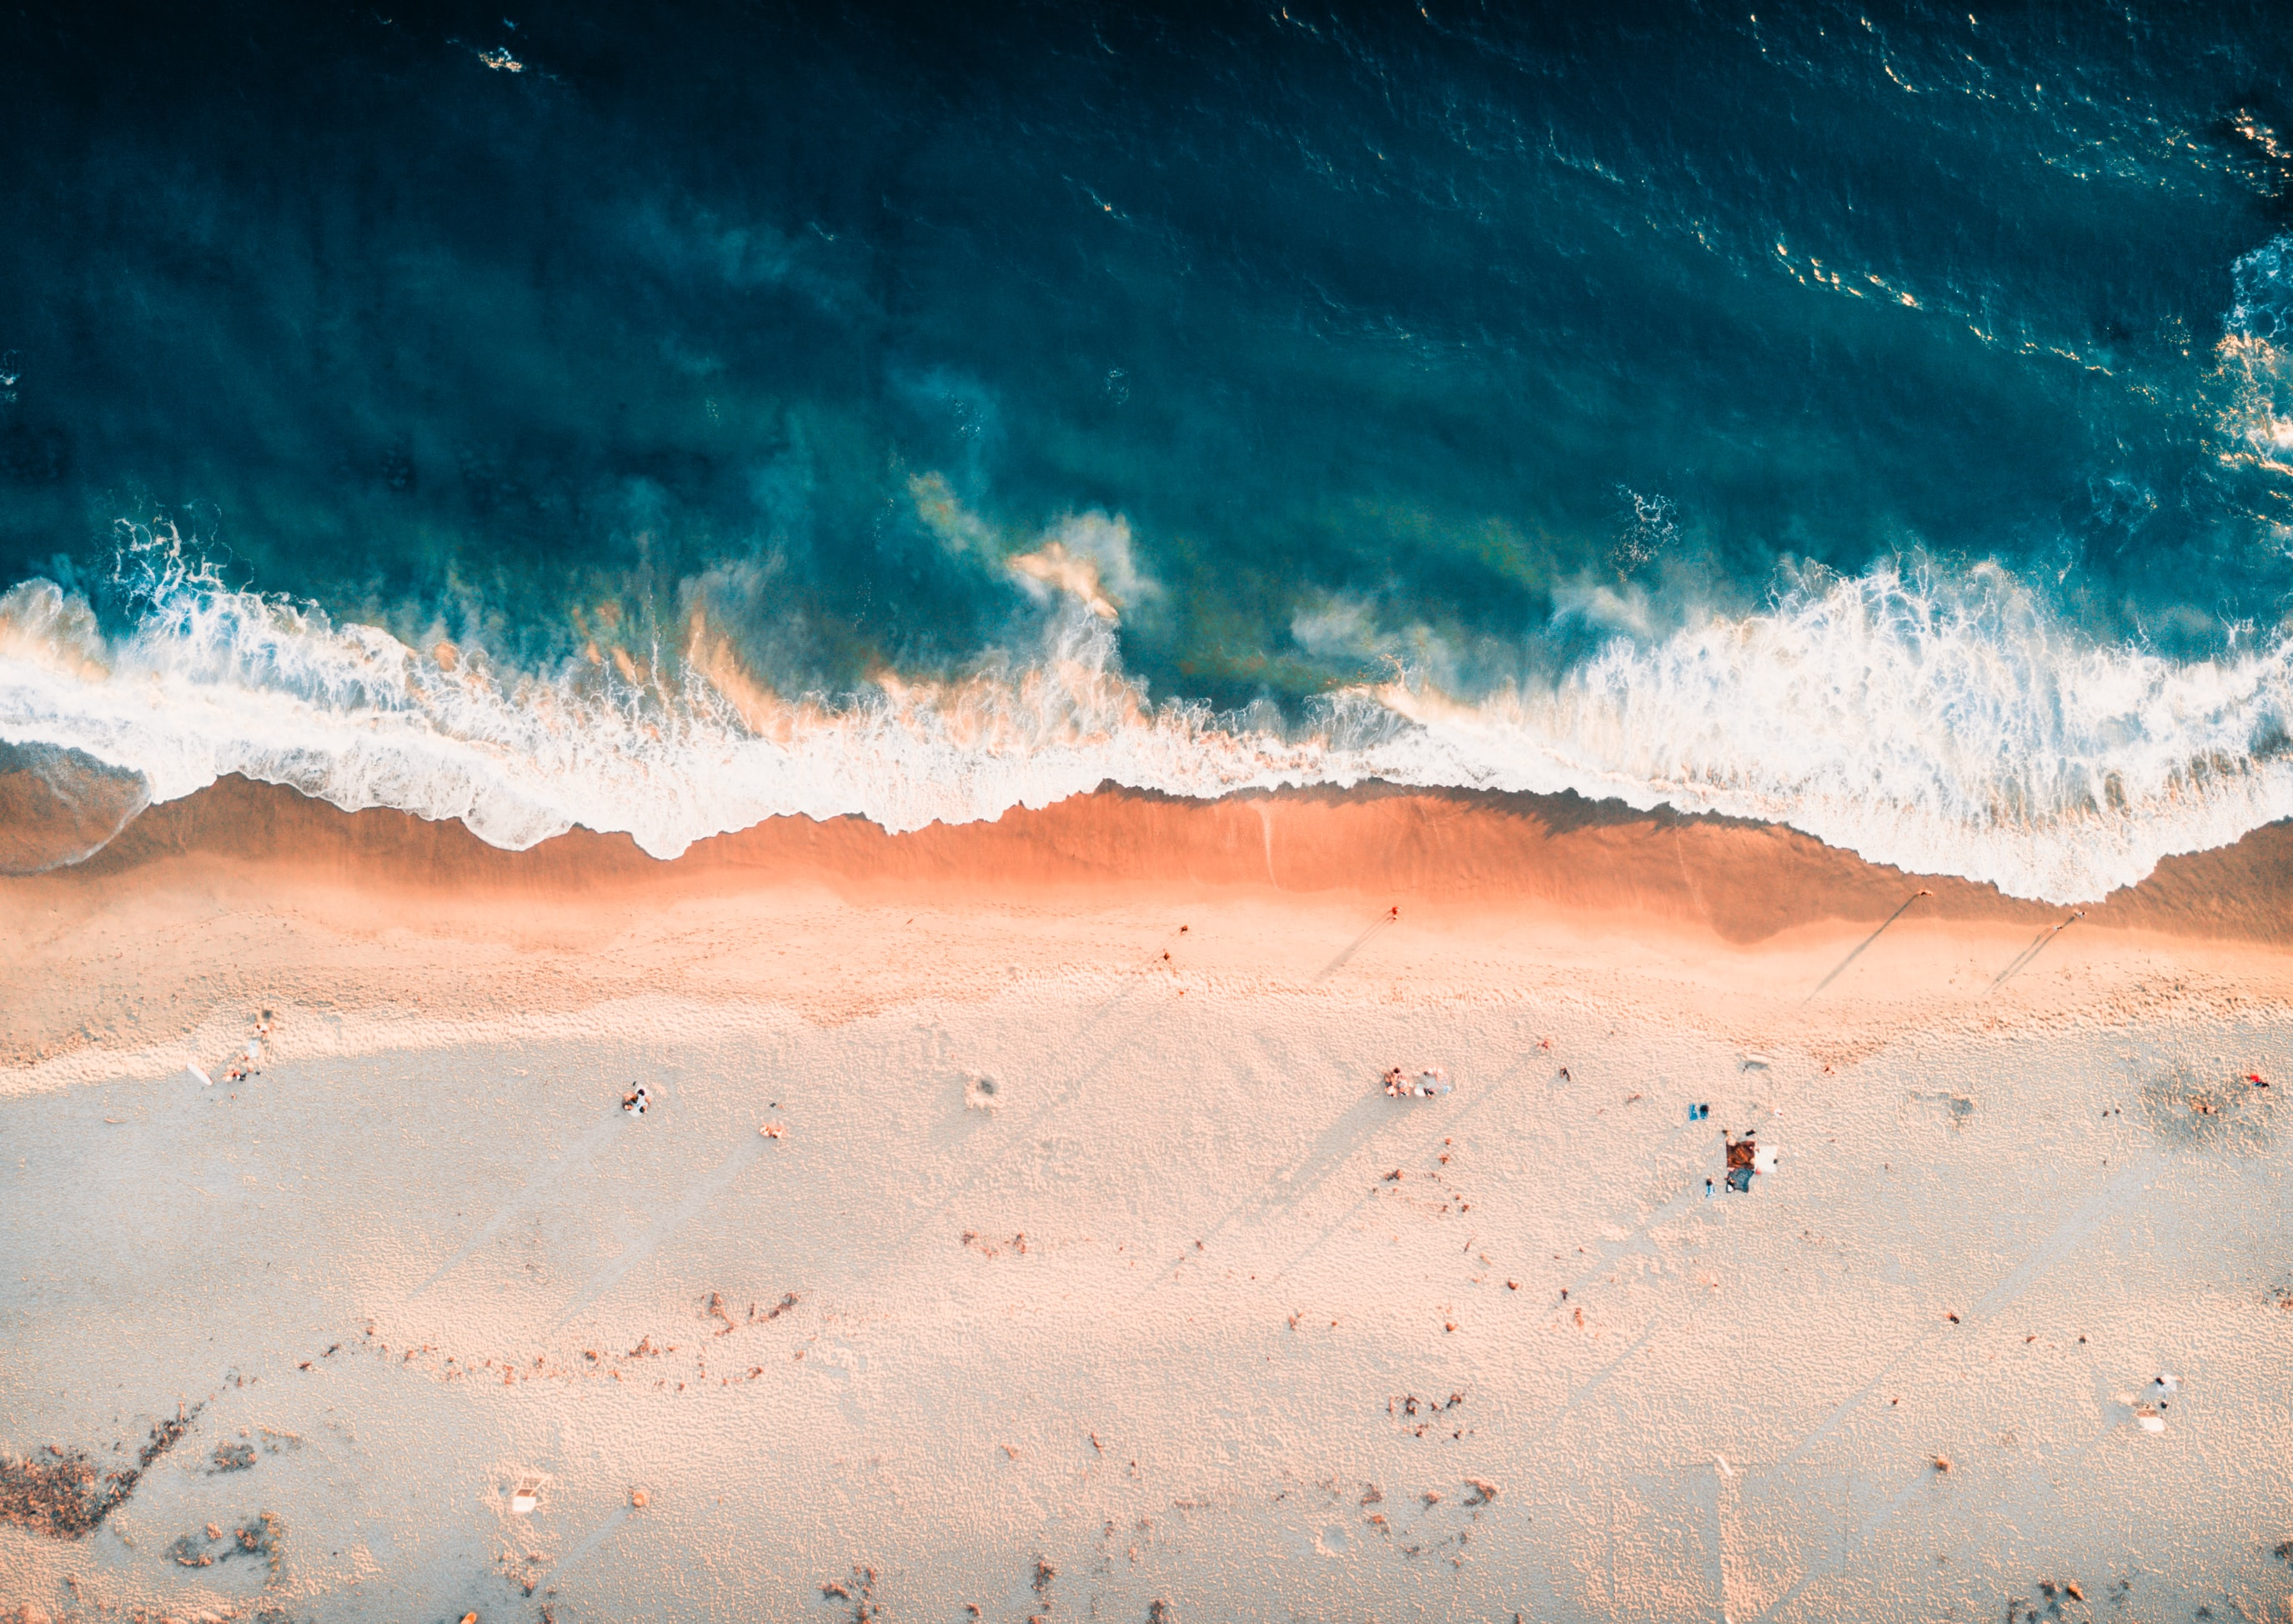 Drone view of the waves splashing on the Laguna Beach sand coastline